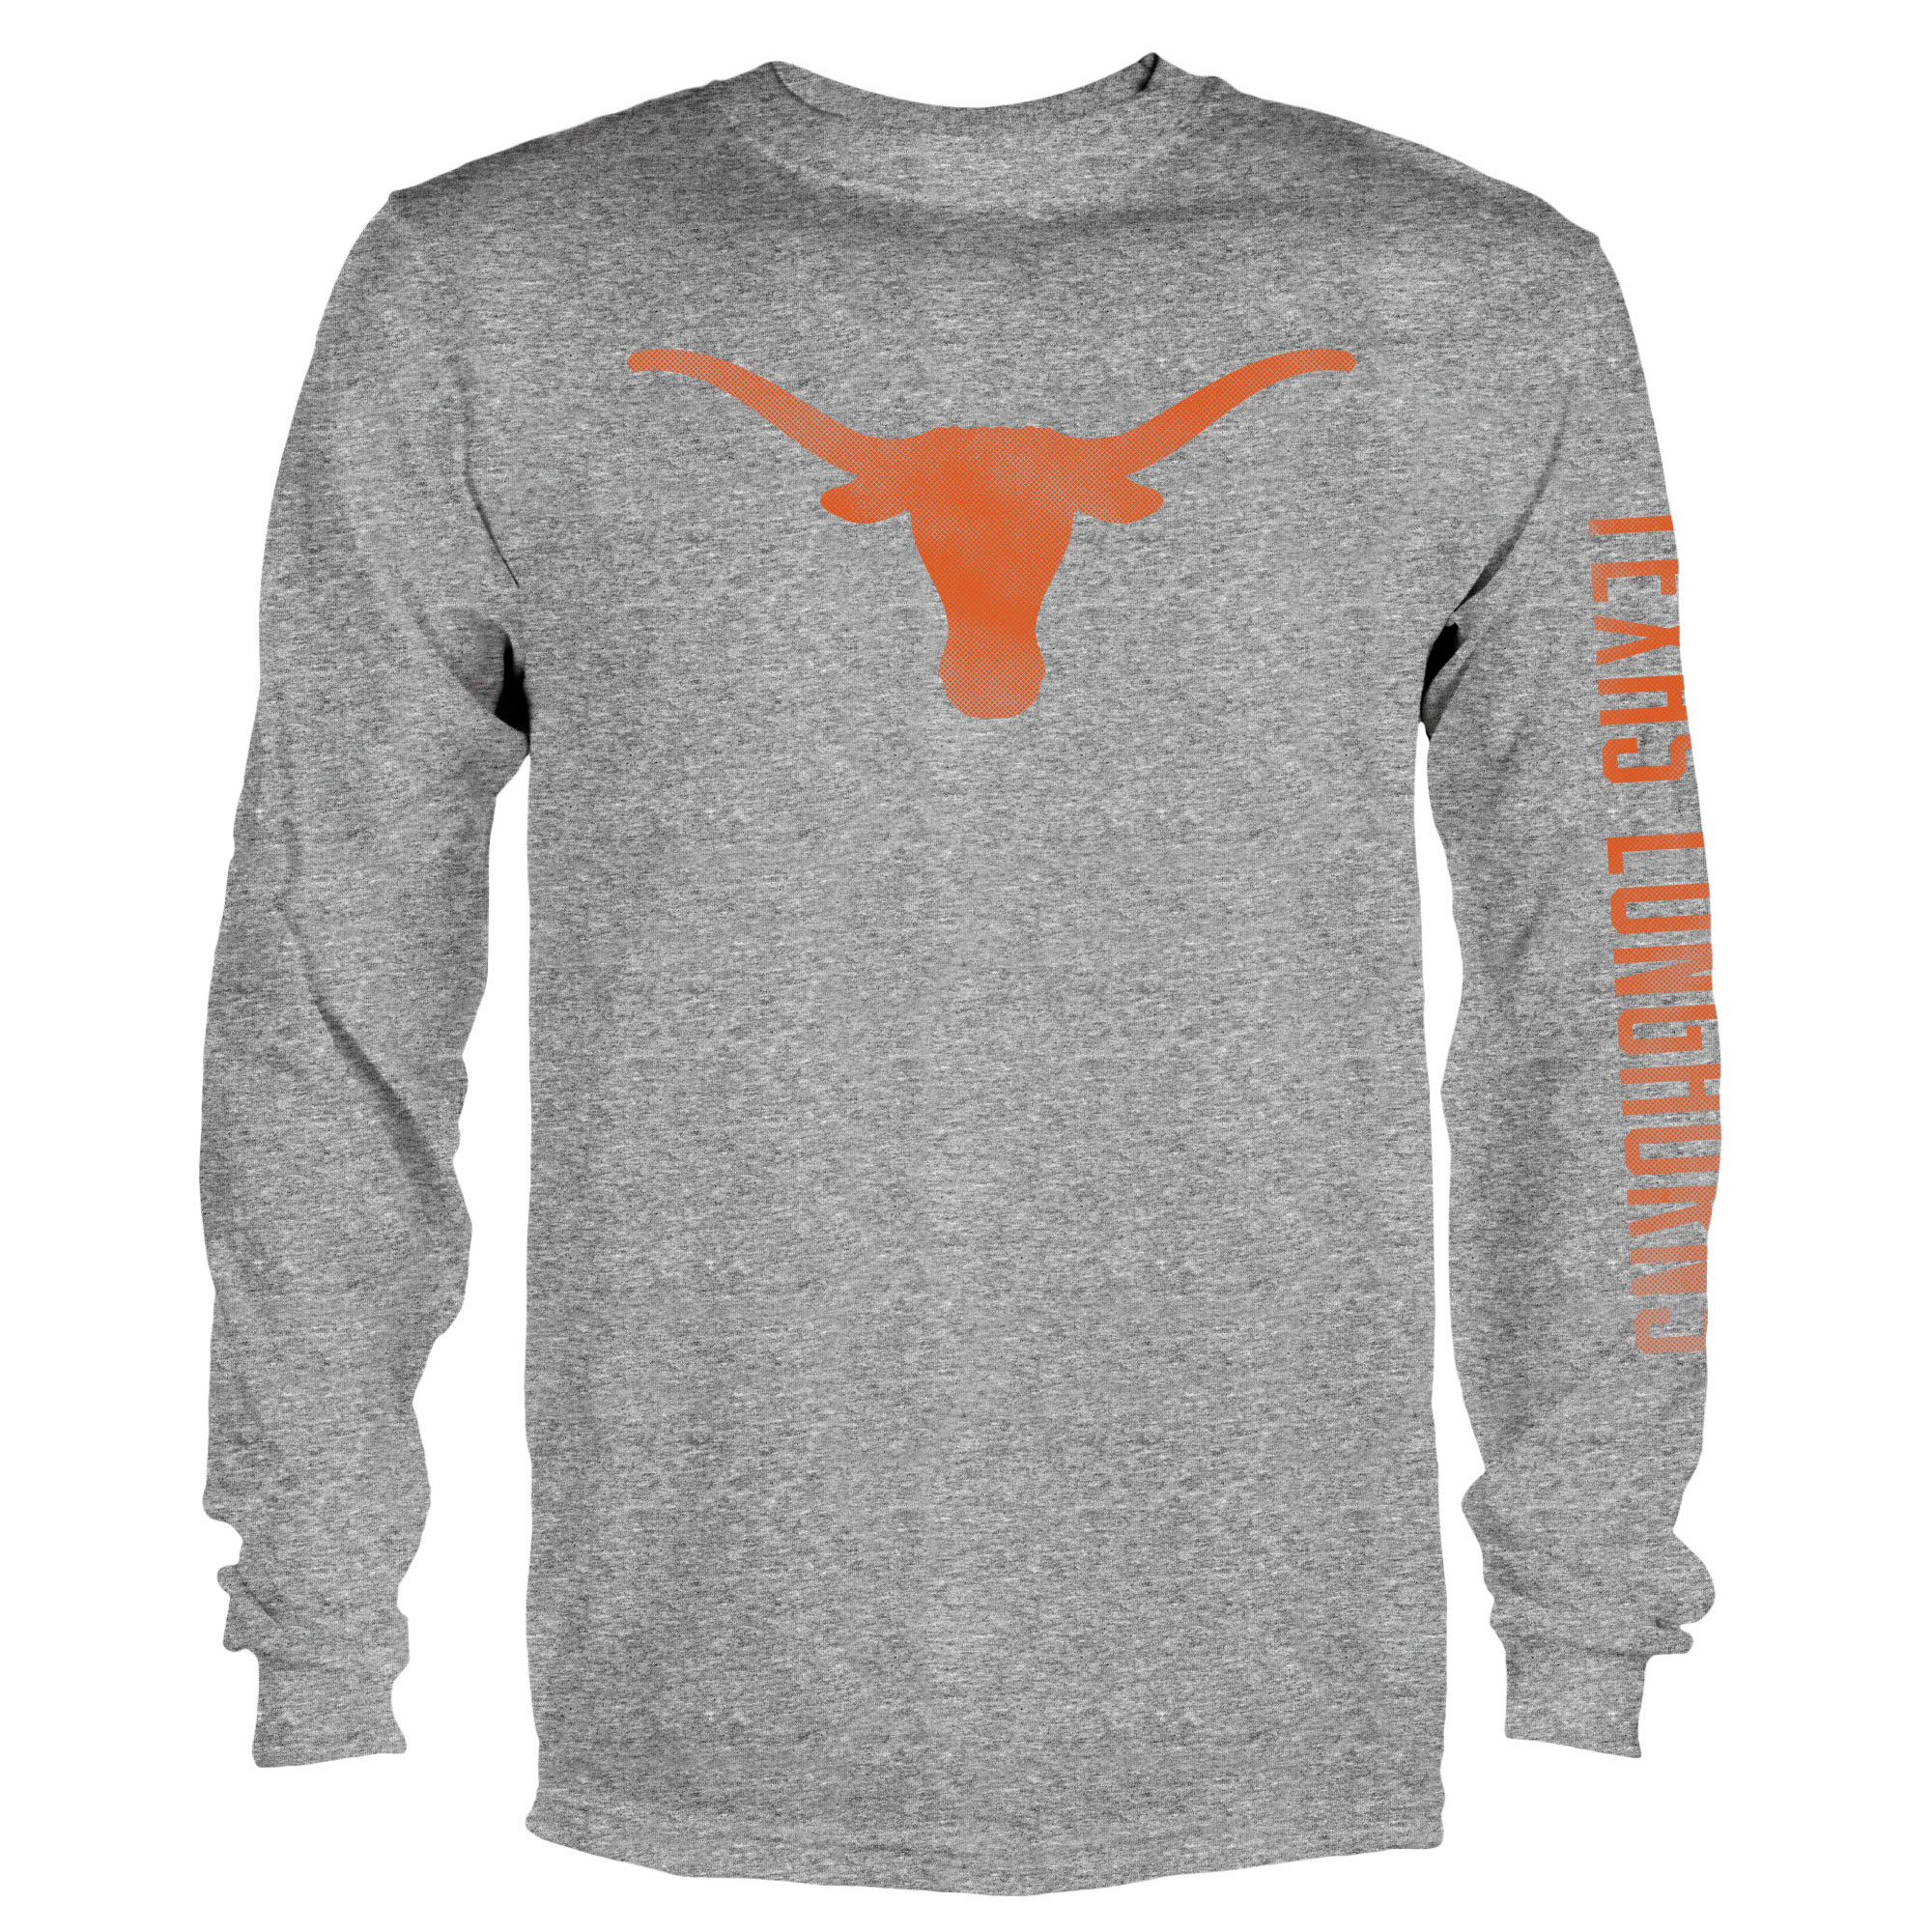 Men's Gray Texas Longhorns Notion Long Sleeve T-Shirt